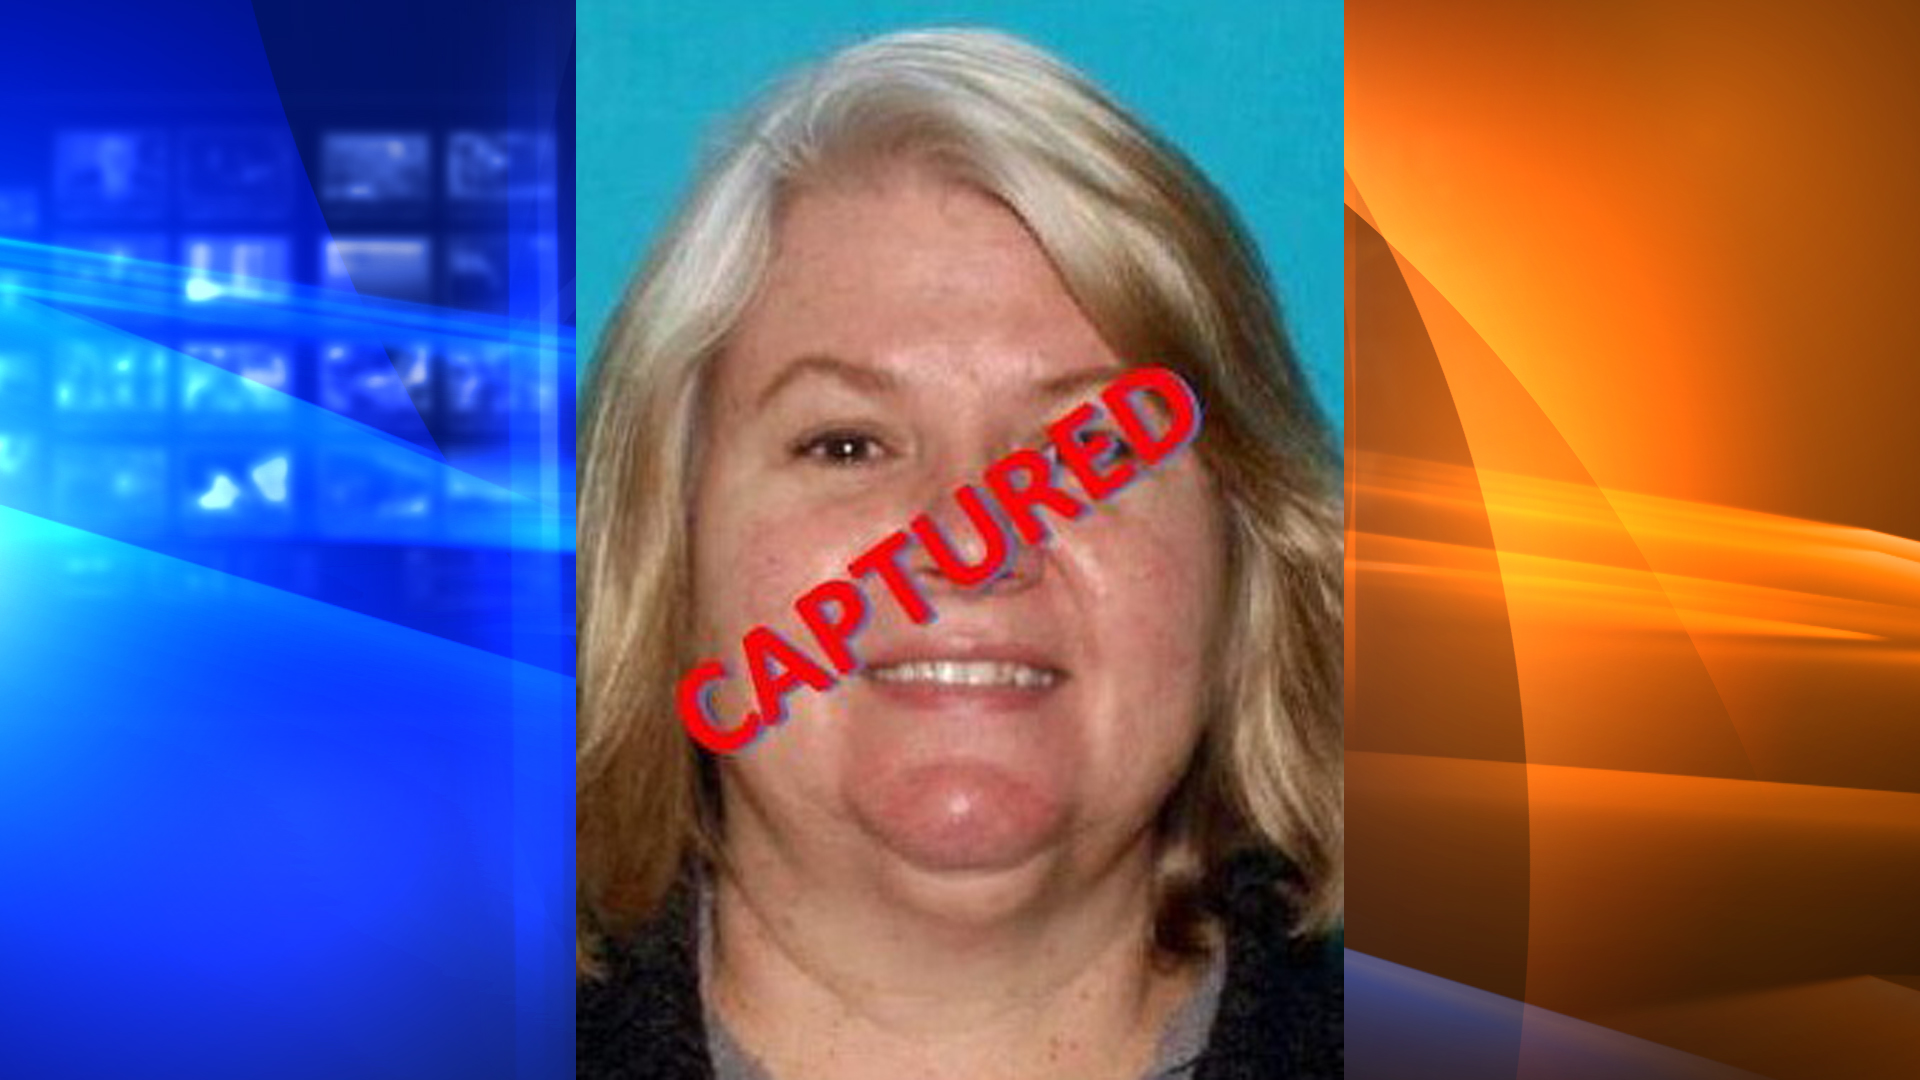 Lois Ann Riess is shown in a photo released by the U.S. Marshals Office on April 13, 2018.